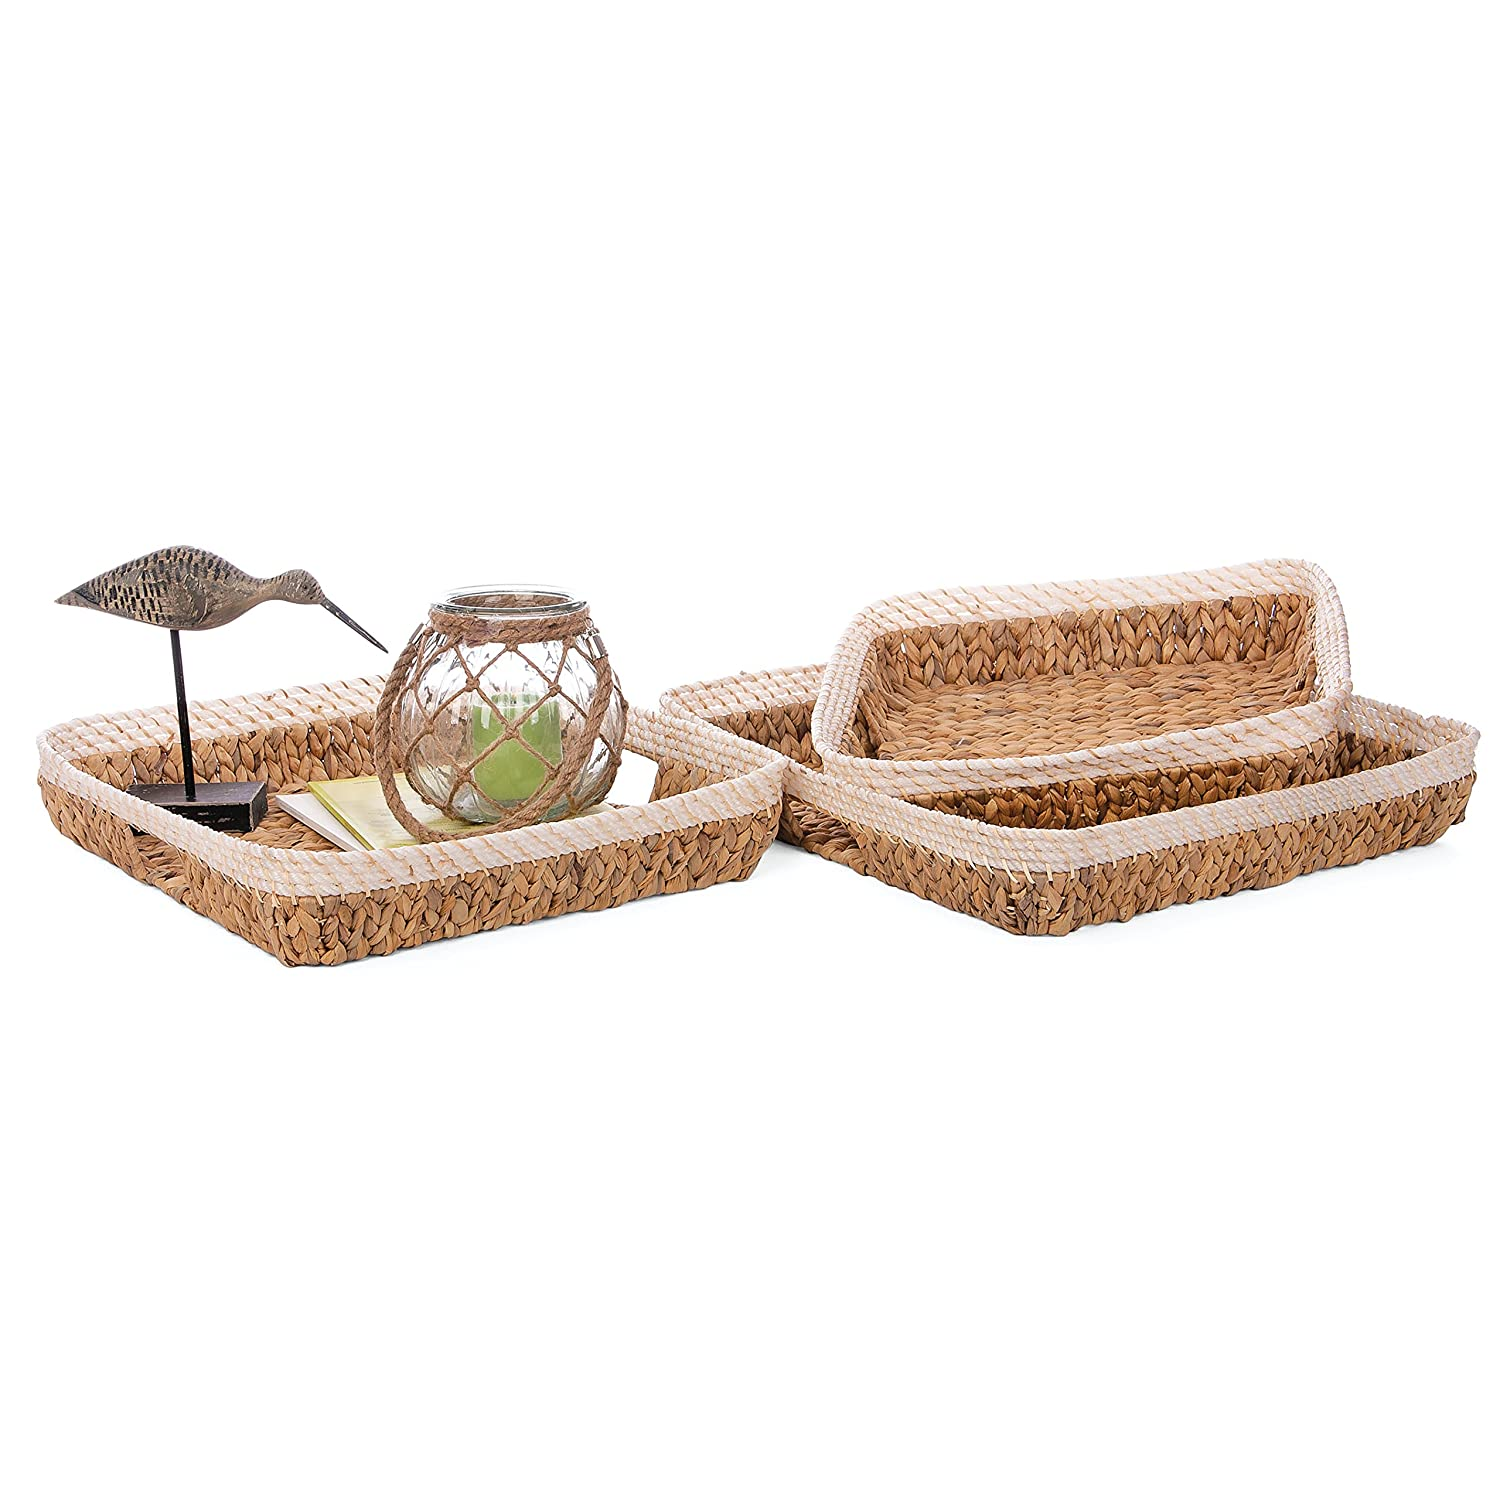 Skalny 5267.1.3 16 Dx3.75 20 Dx4 Square Hyacinth Trays 3pc Set Piece